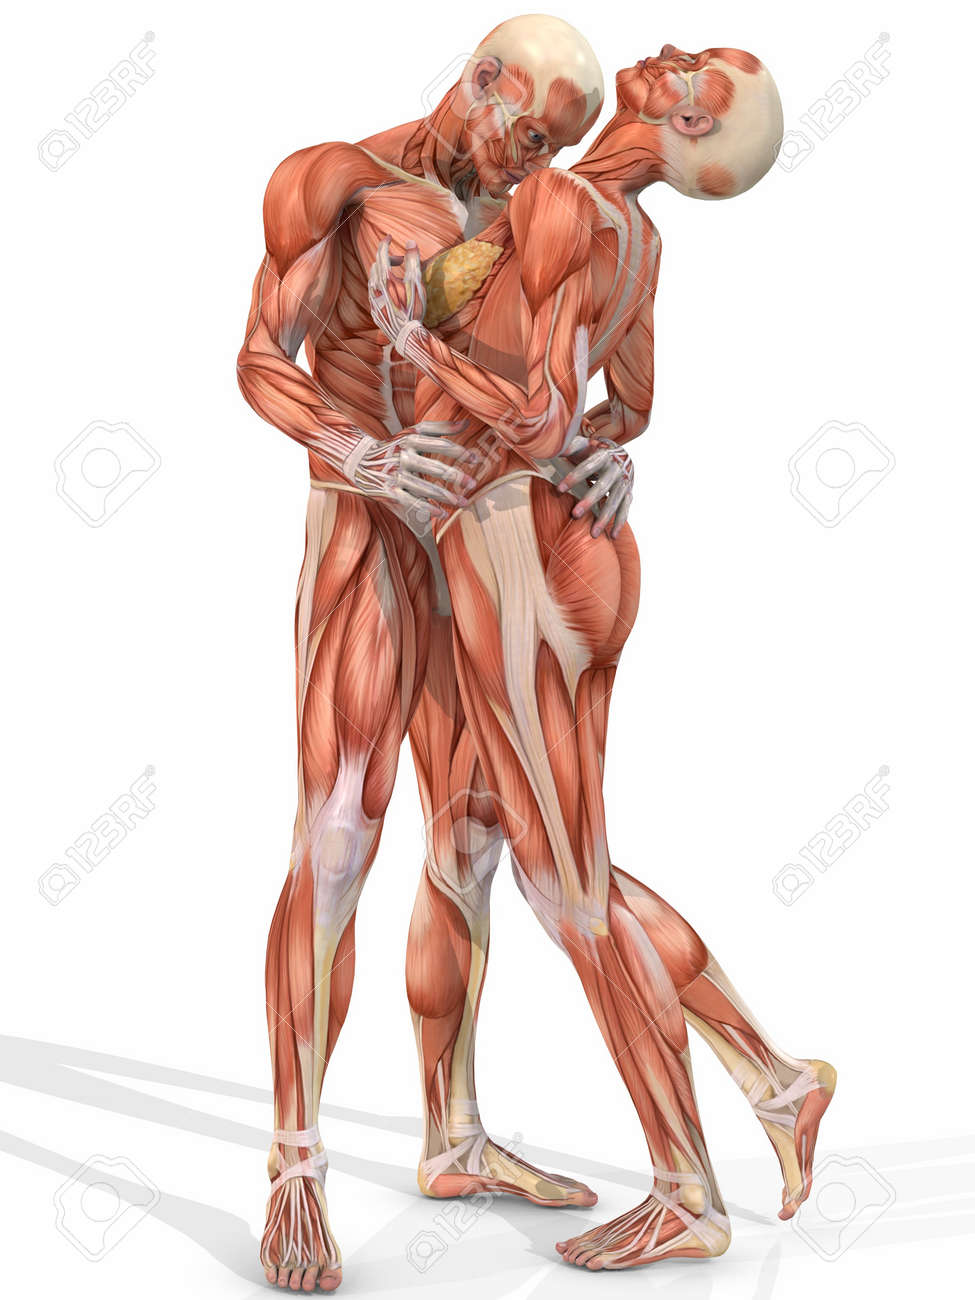 Diagram Of Human Anatomy Female And Male - Circuit Connection Diagram •